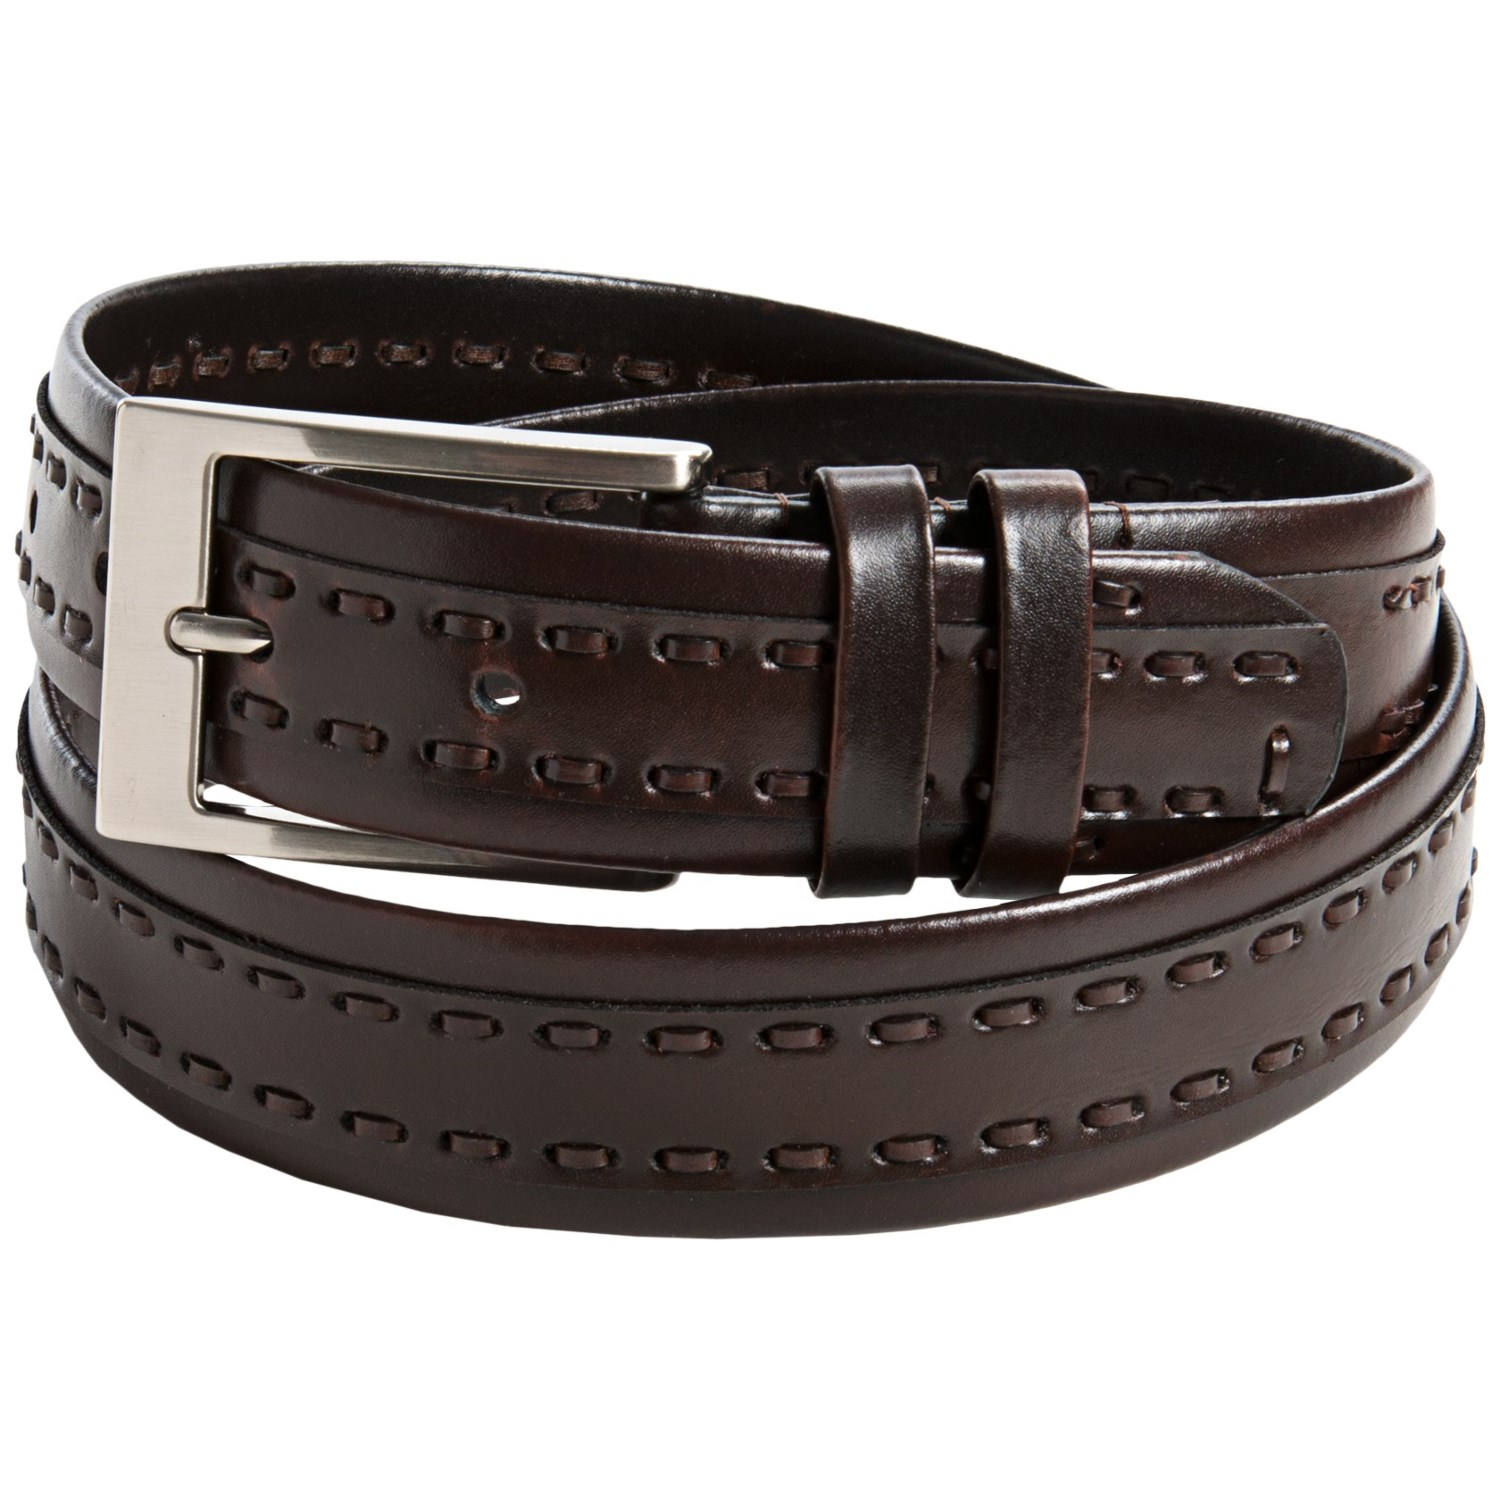 leather island by bill lavin stitched leather belt for